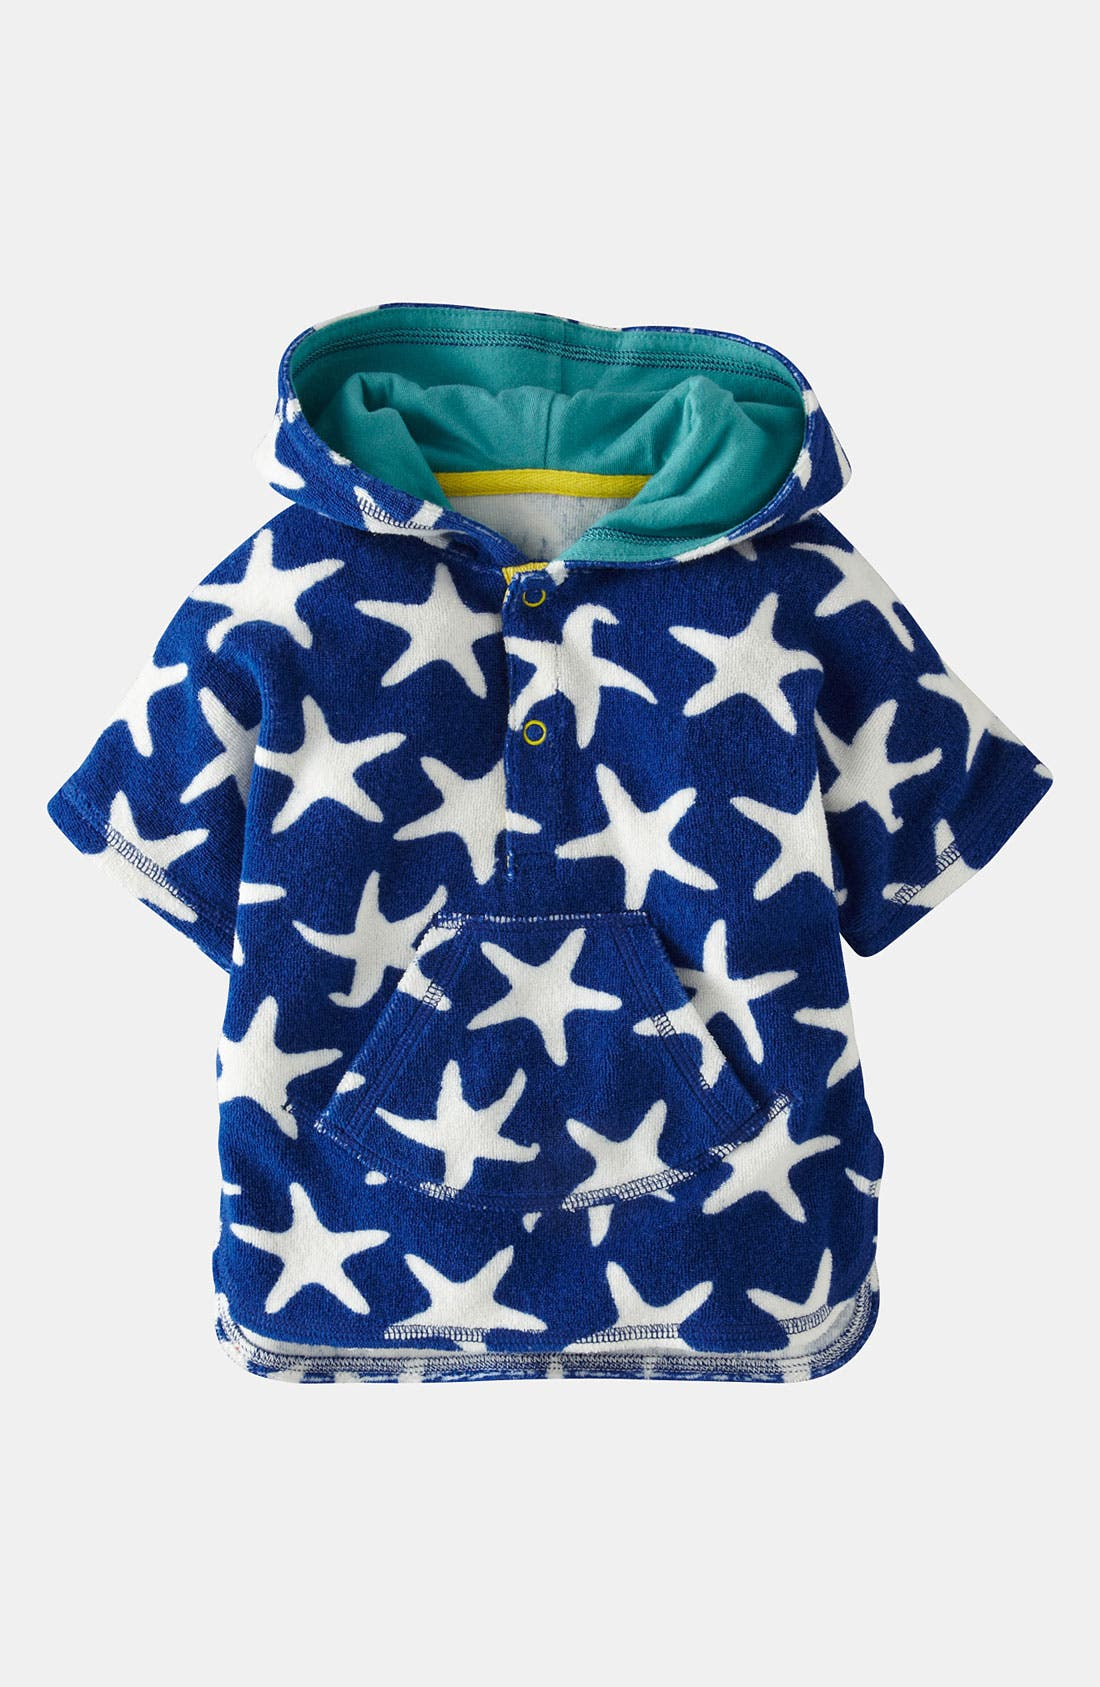 Alternate Image 1 Selected - Mini Boden 'Toweling' Poncho (Baby)